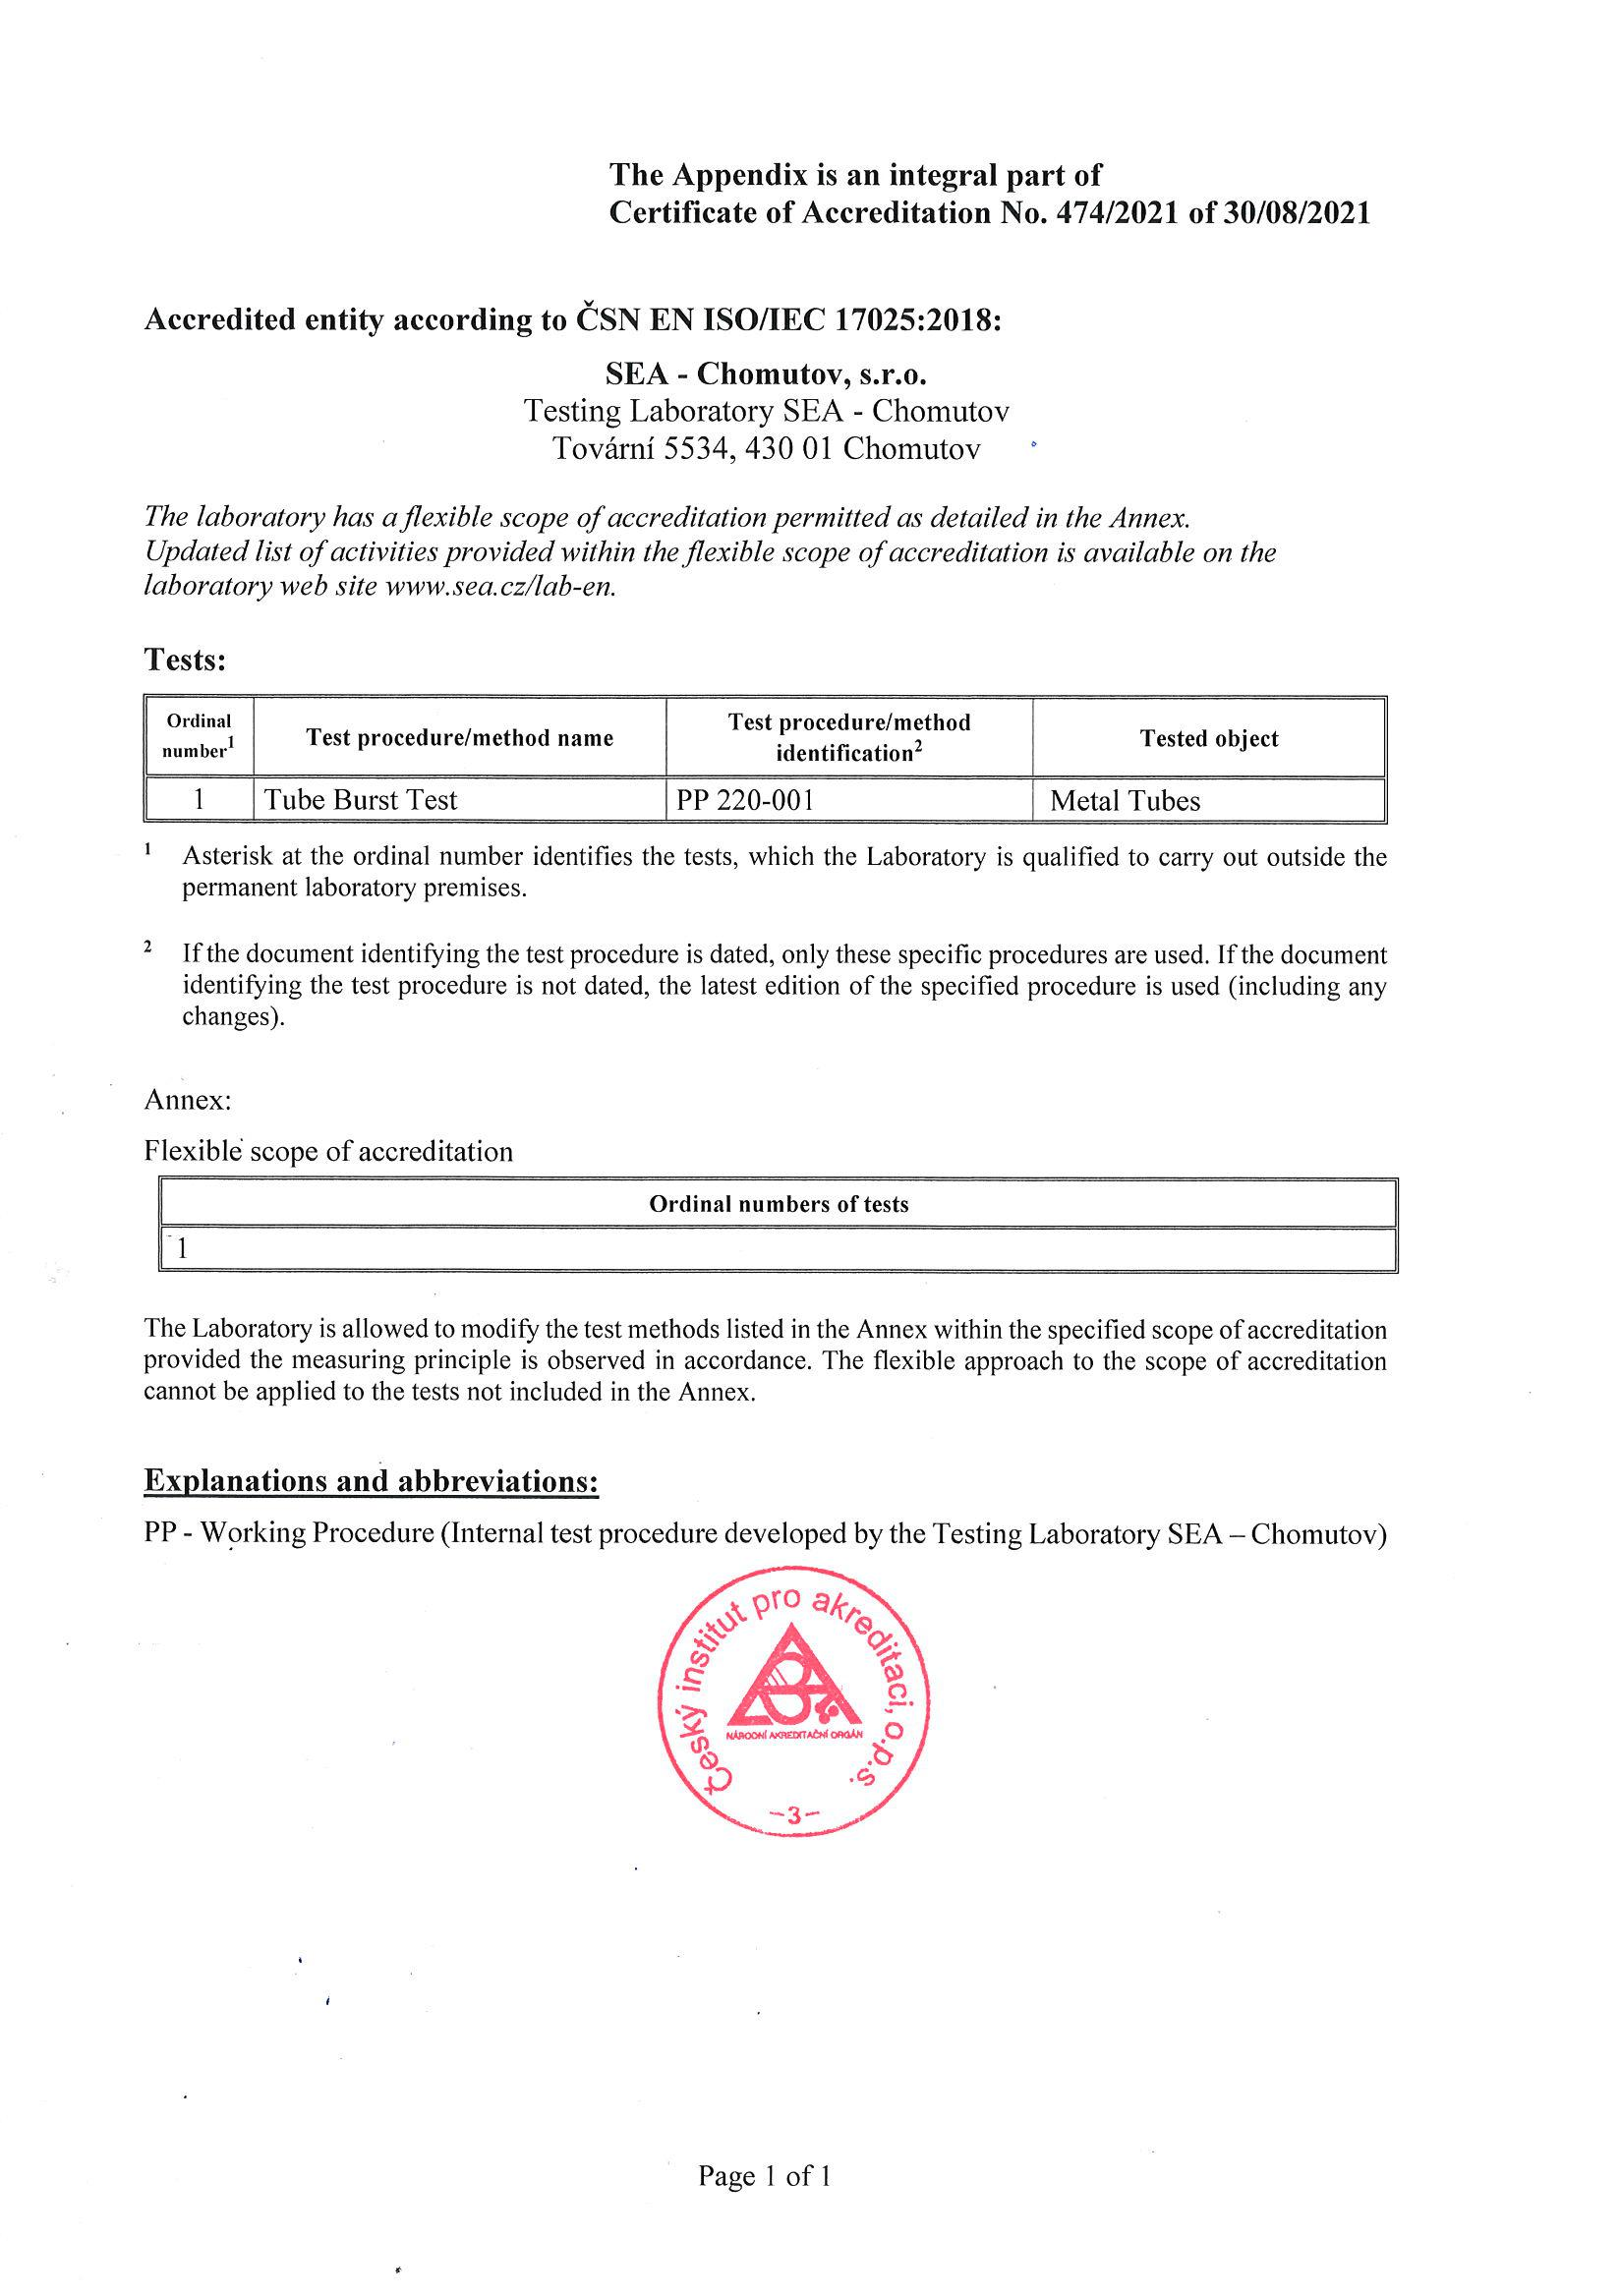 Appendix to the certificate of accreditation of testing laboratory according to ČSN EN ISO / IEC 17025:2005